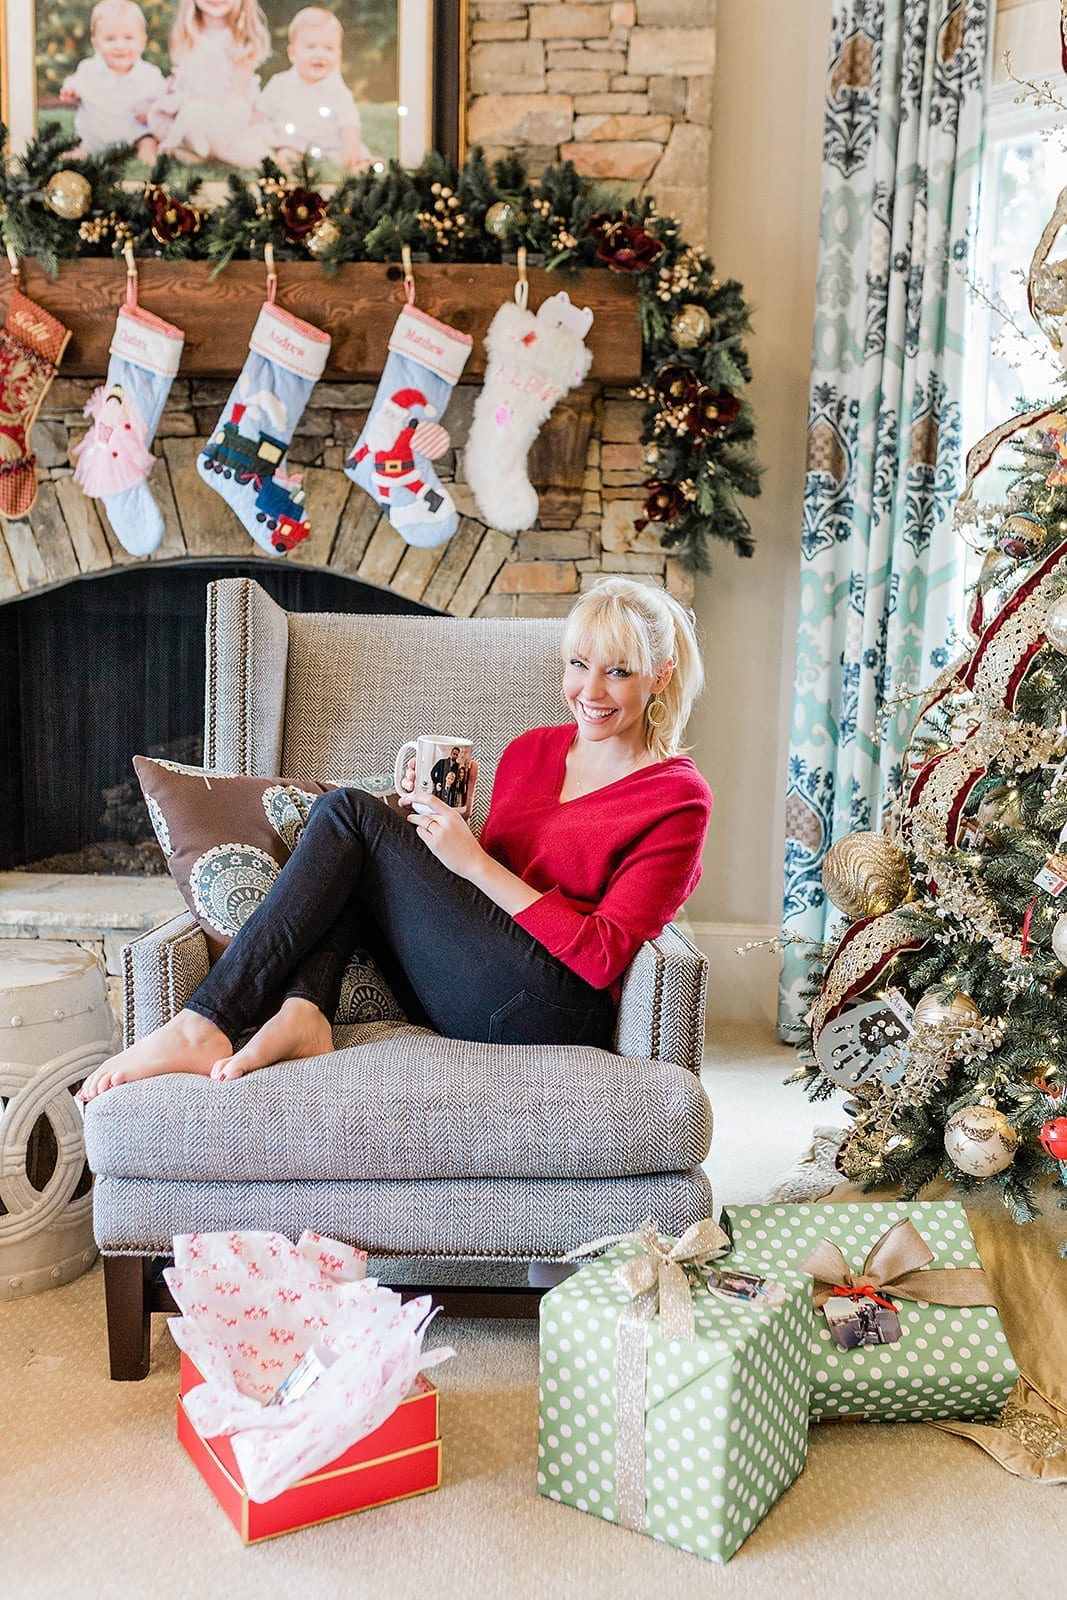 Personalized Gifts for Christmas - Kodak Moments helps create affordable and personal gifts on their mobile app. It's never been easier to get your photos off your cell phone and print them!